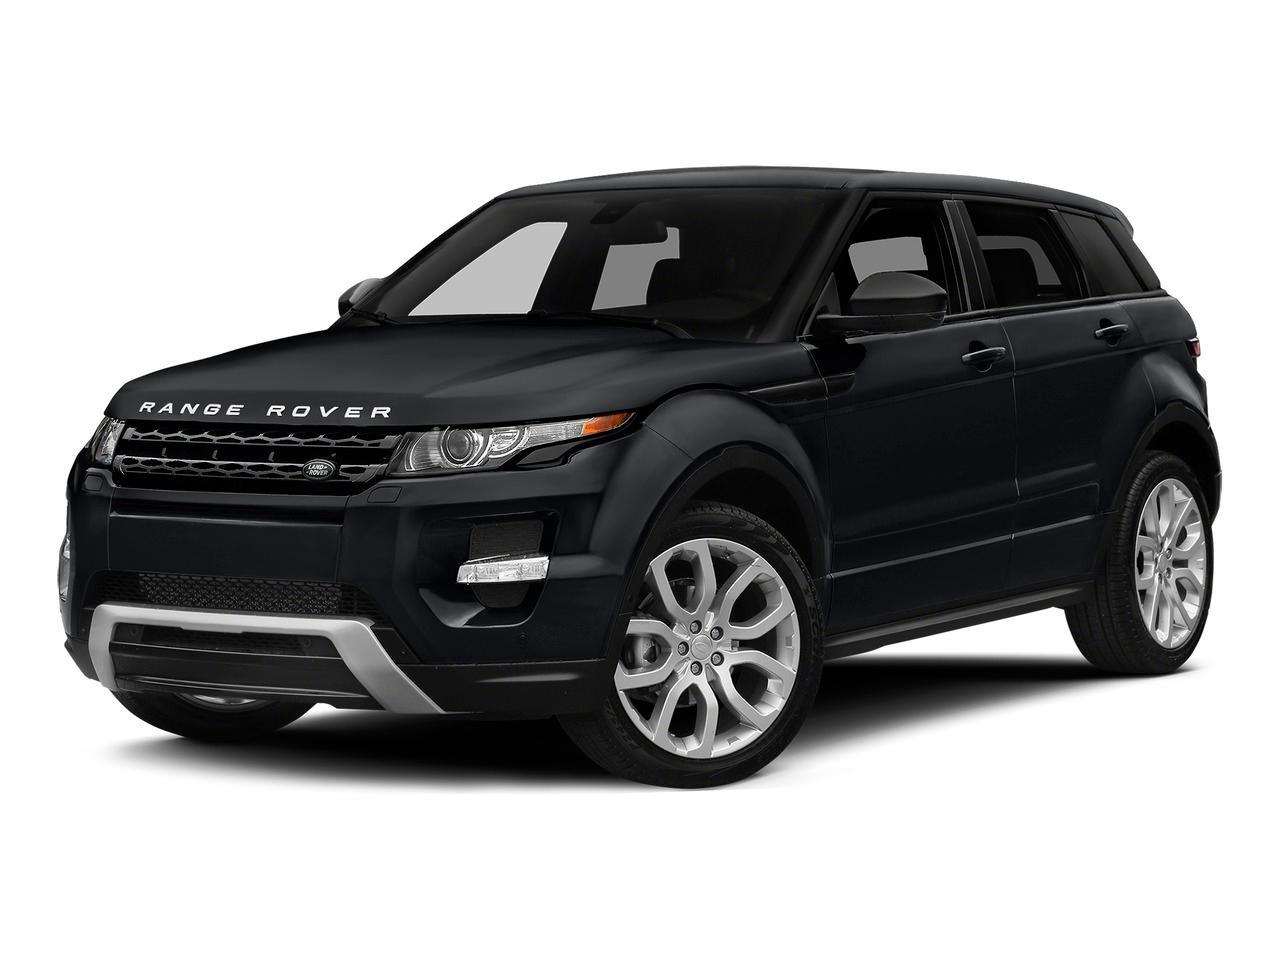 2015 Land Rover Range Rover Evoque Vehicle Photo in Charlotte, NC 28227